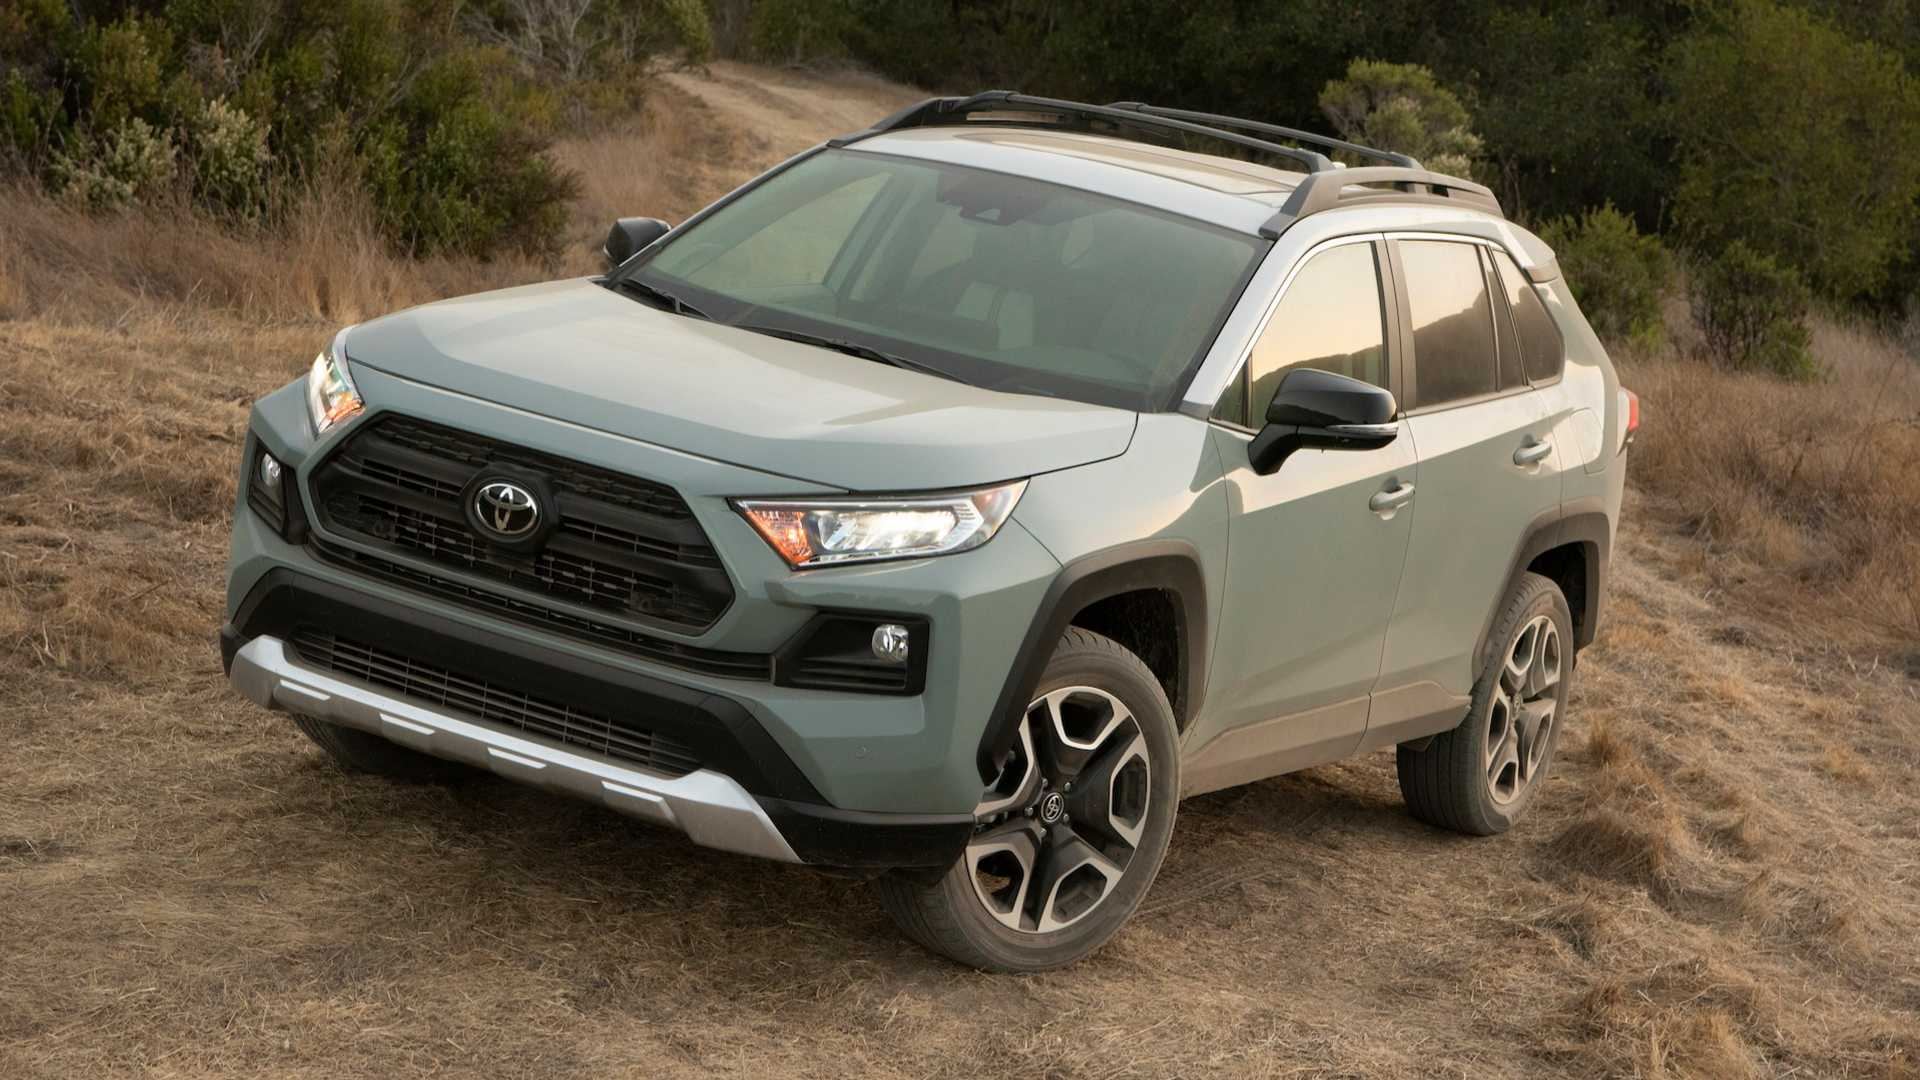 76 All New 2019 Toyota Rav4 Redesign for 2019 Toyota Rav4